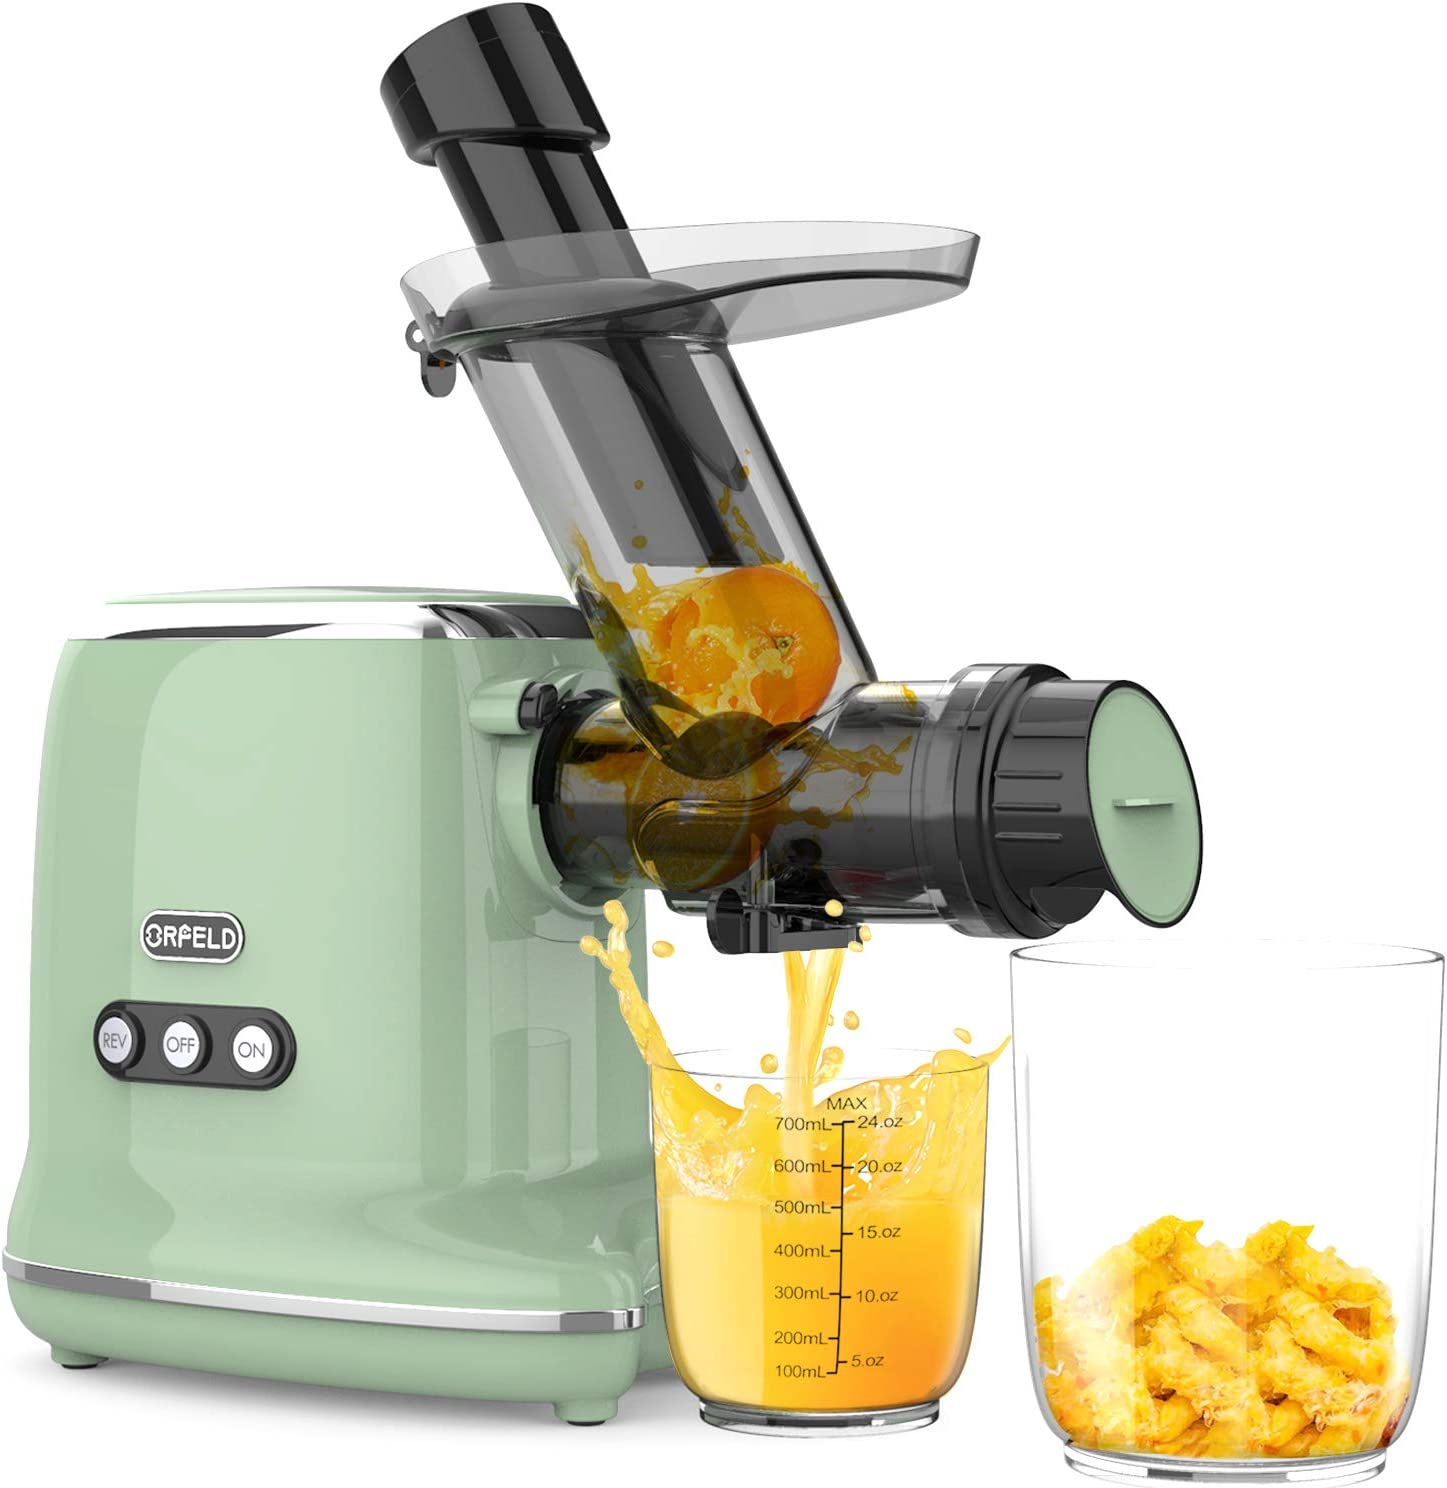 Juicer Machines, Orfeld Cold Press Juicer with Highest Juice Yield & Richest Nutrition, Quiet Motor & Reverse Function, Easy to Clean, BPA-Free Masticating Juicer Machines with Brush for Vegetables and Fruits